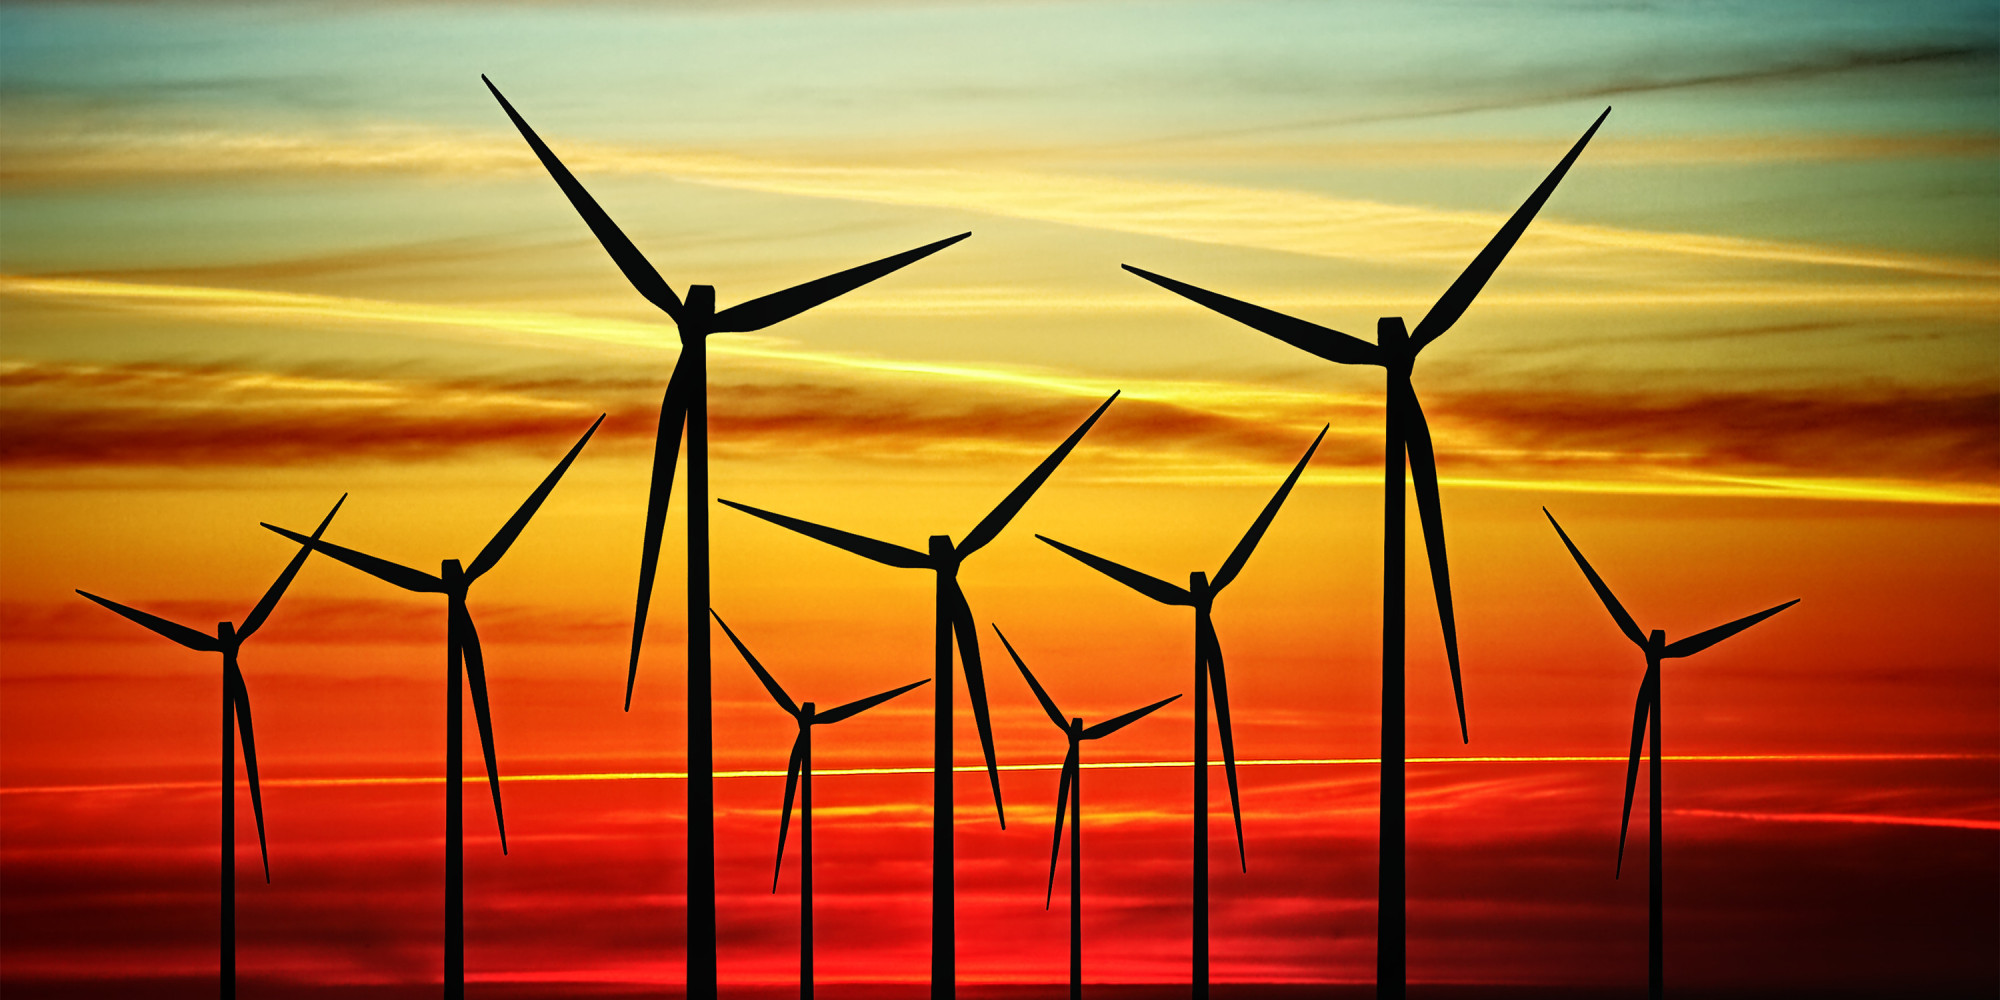 Researchers Look For Ways to Protect Birds as U.S. Wind Farms Expand